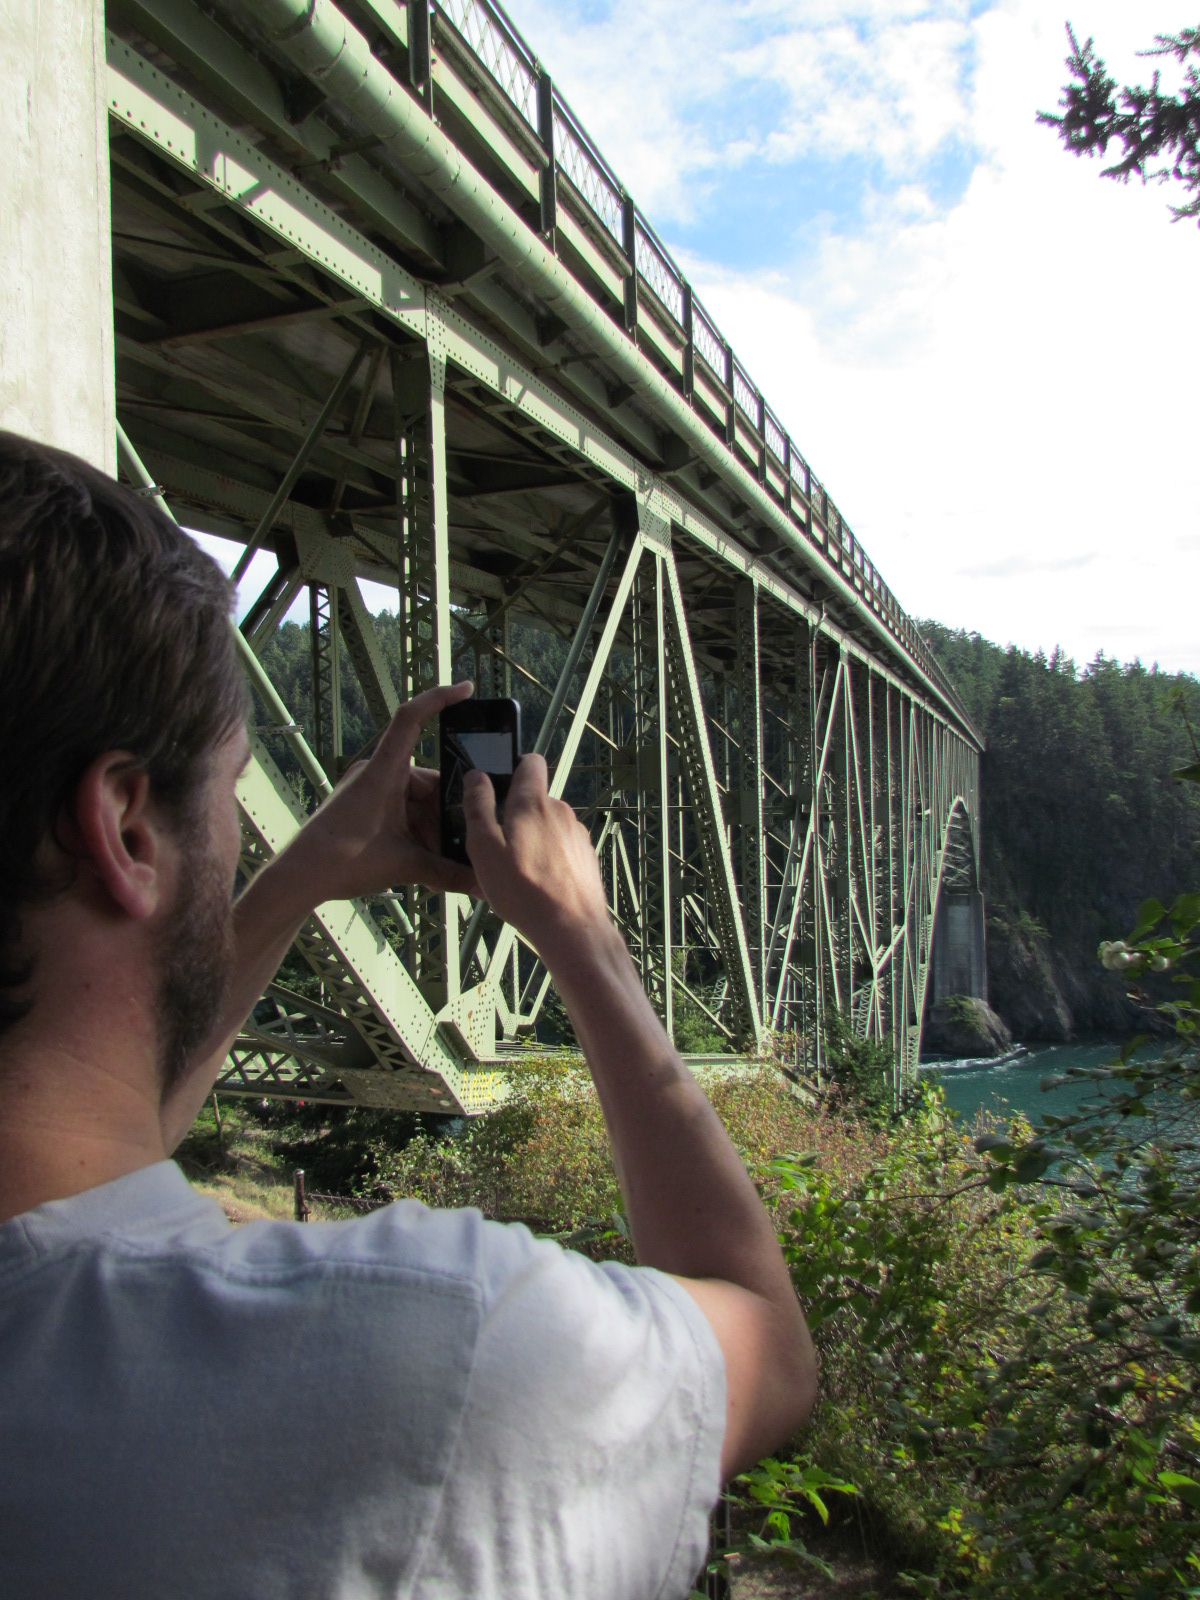 John's first trip to Whidbey Island 2013 - The north side of the Deception Pass Bridge on Fidalgo Island.